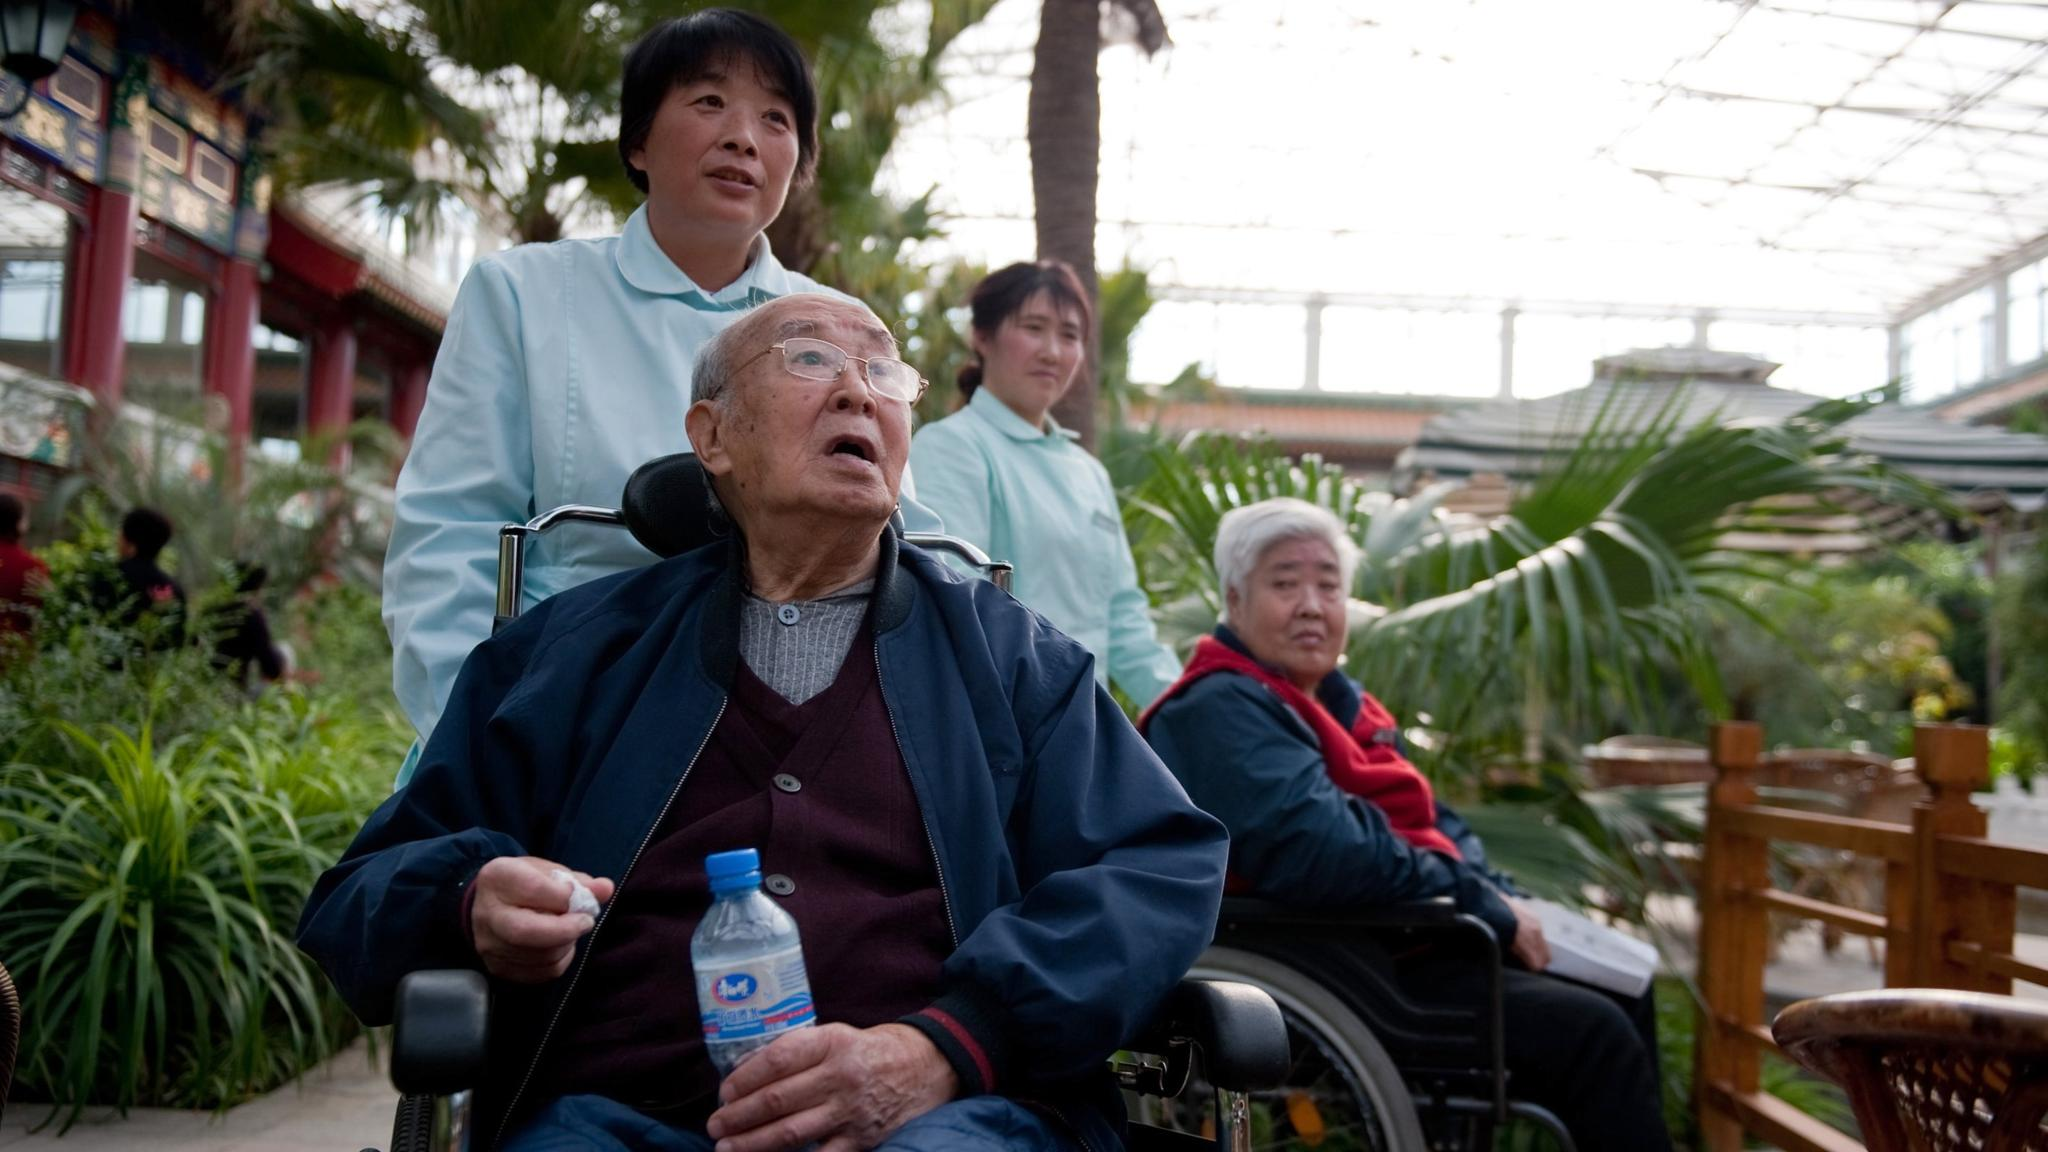 The Silver Economy: Japan sets template for private sector care